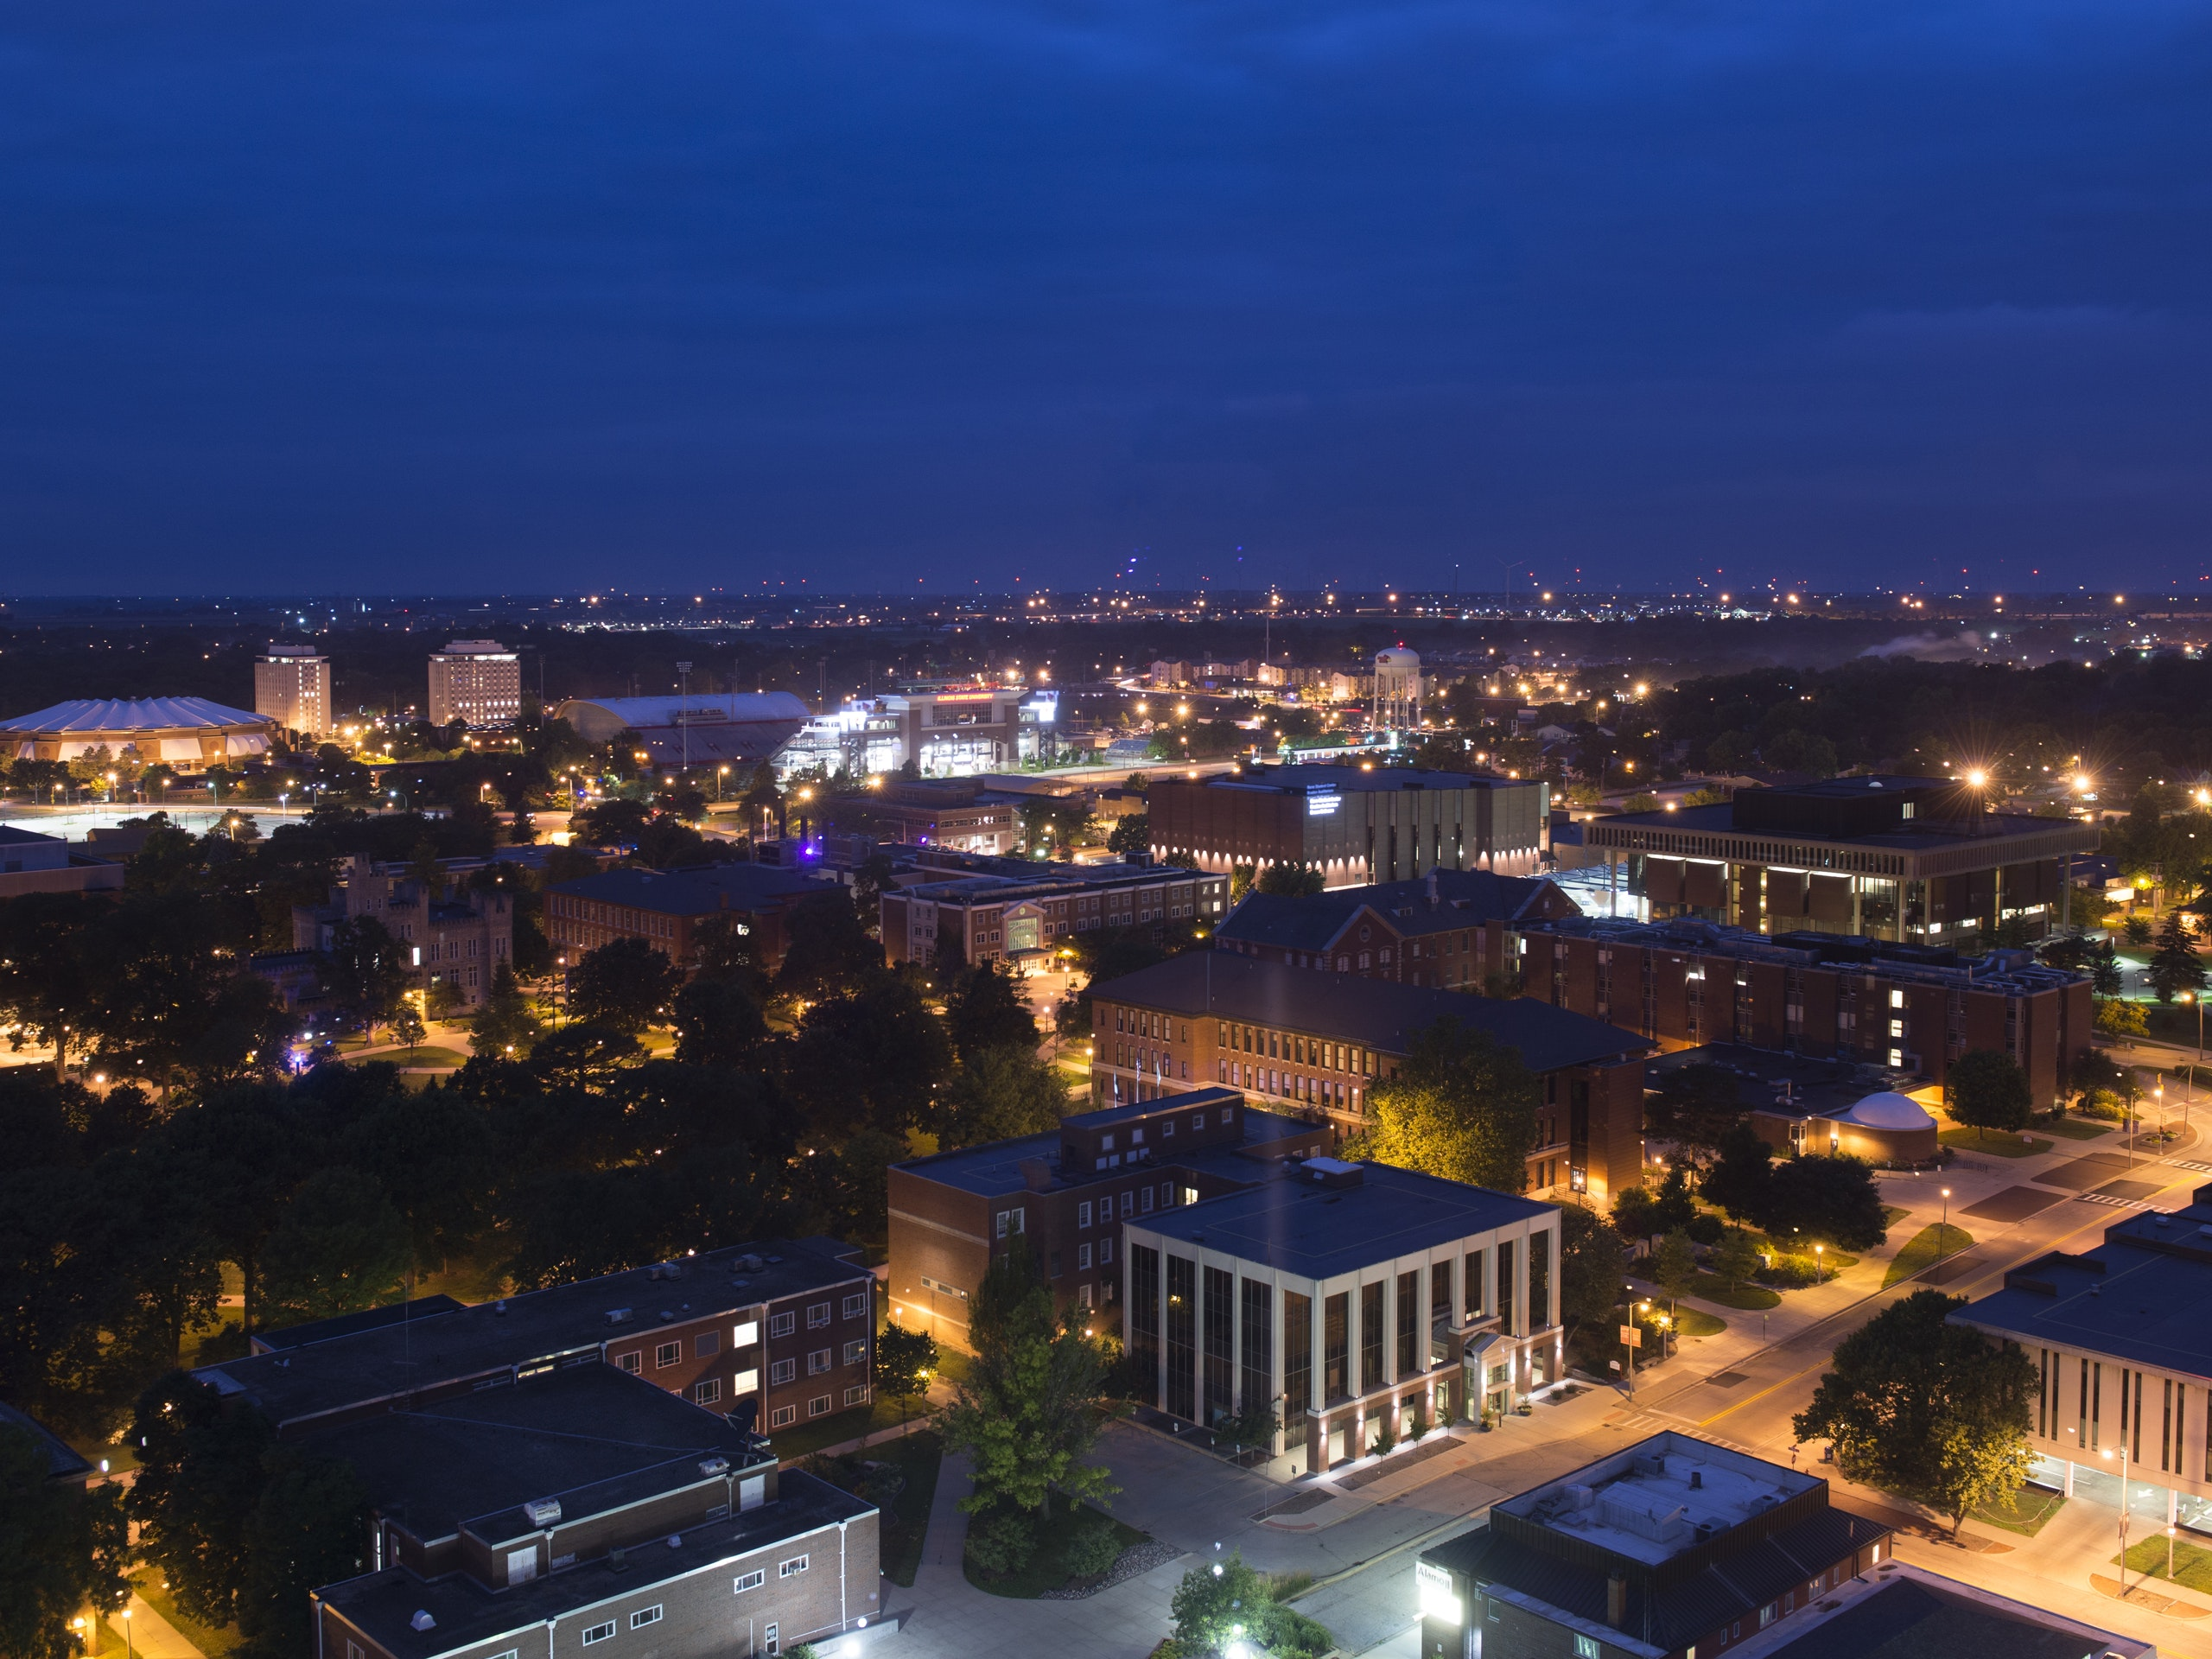 Aerial view of campus at night.